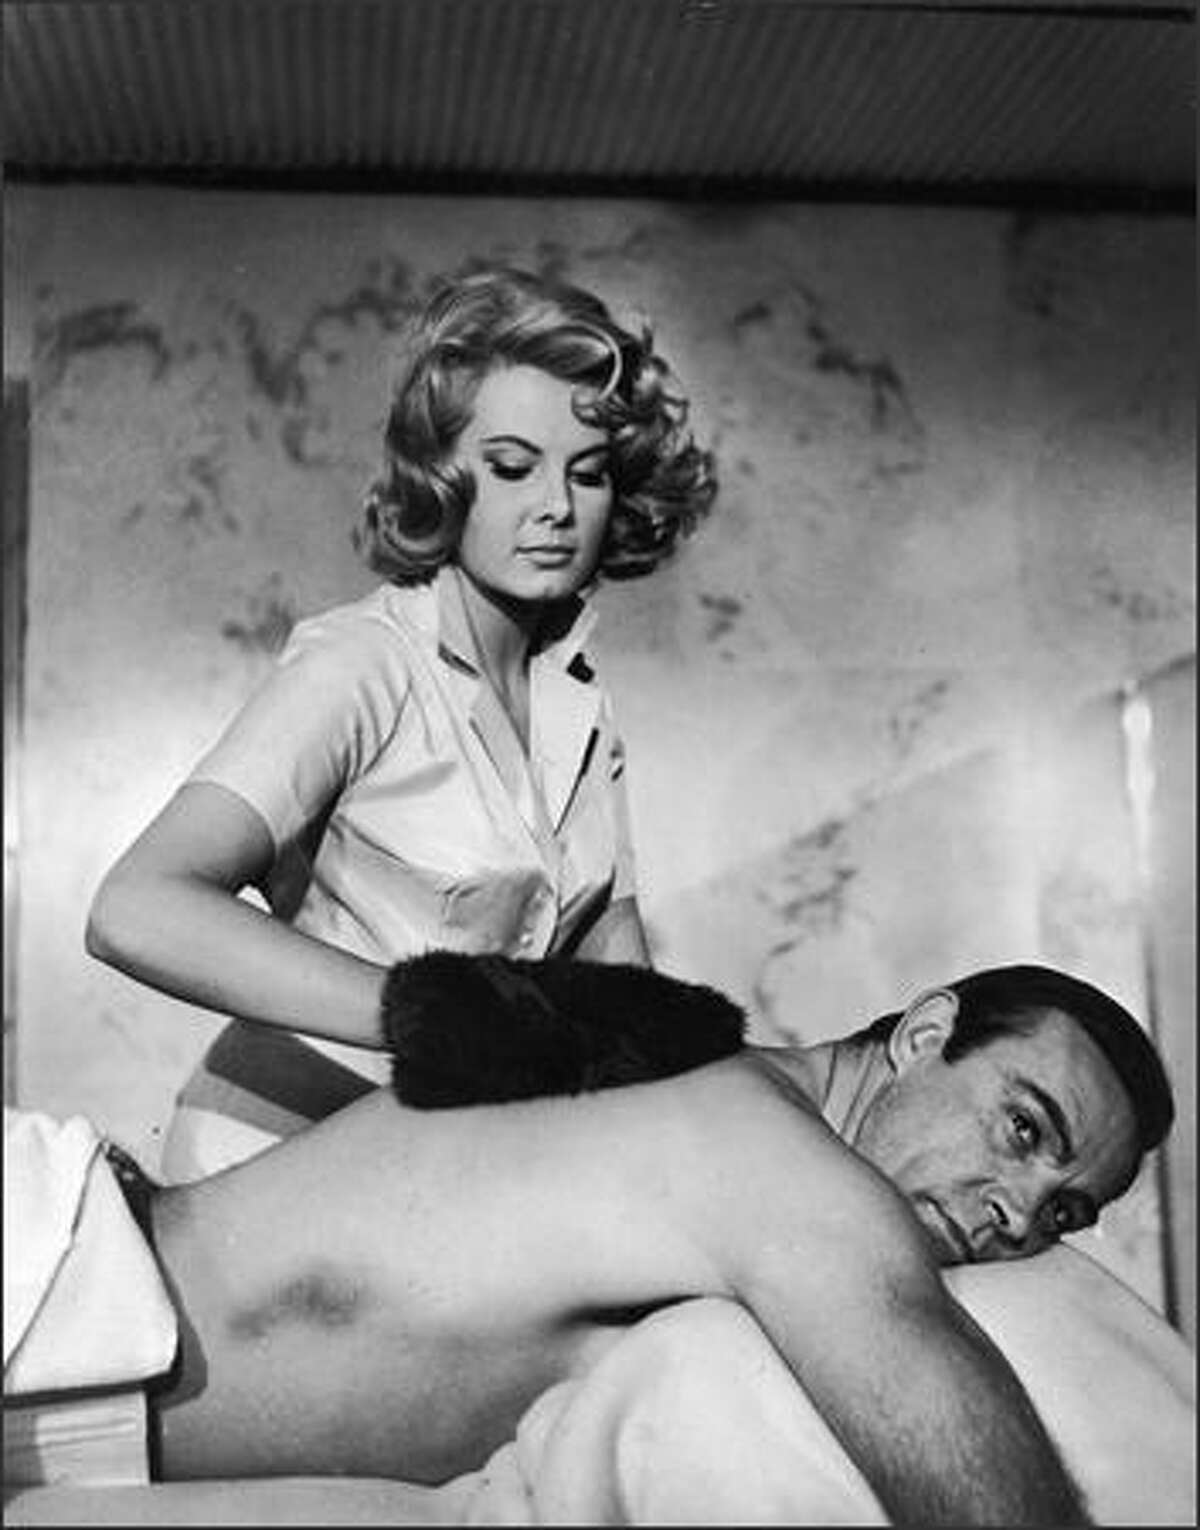 Sean Connery gets a massage from Molly Peters in a still from the James Bond film,